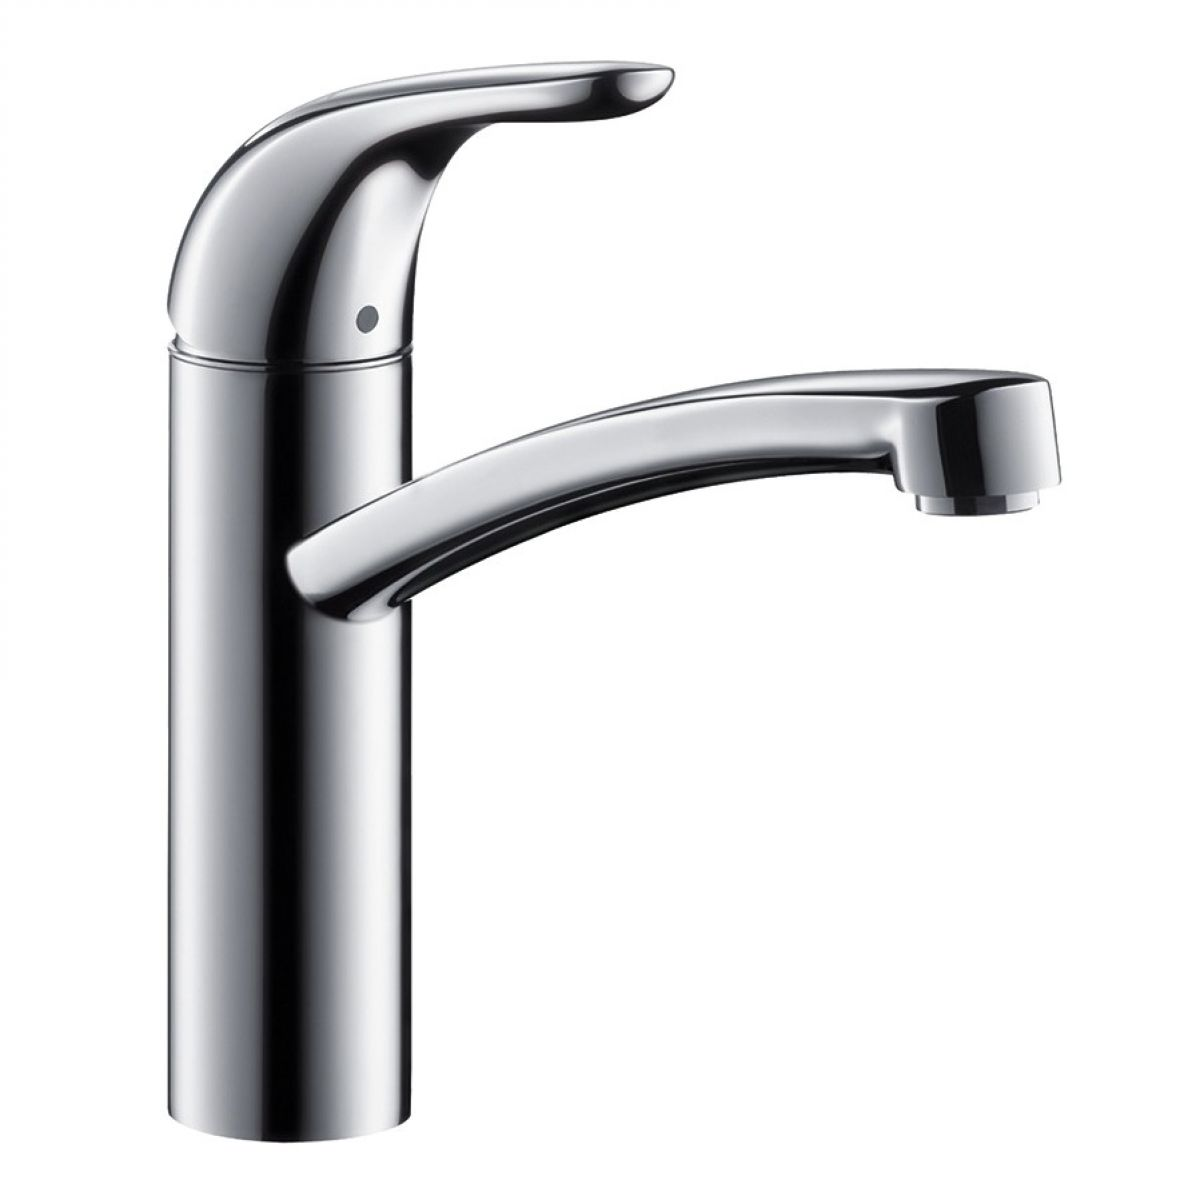 Hansgrohe Focus E Single Lever Kitchen Mixer Tap Uk Bathrooms